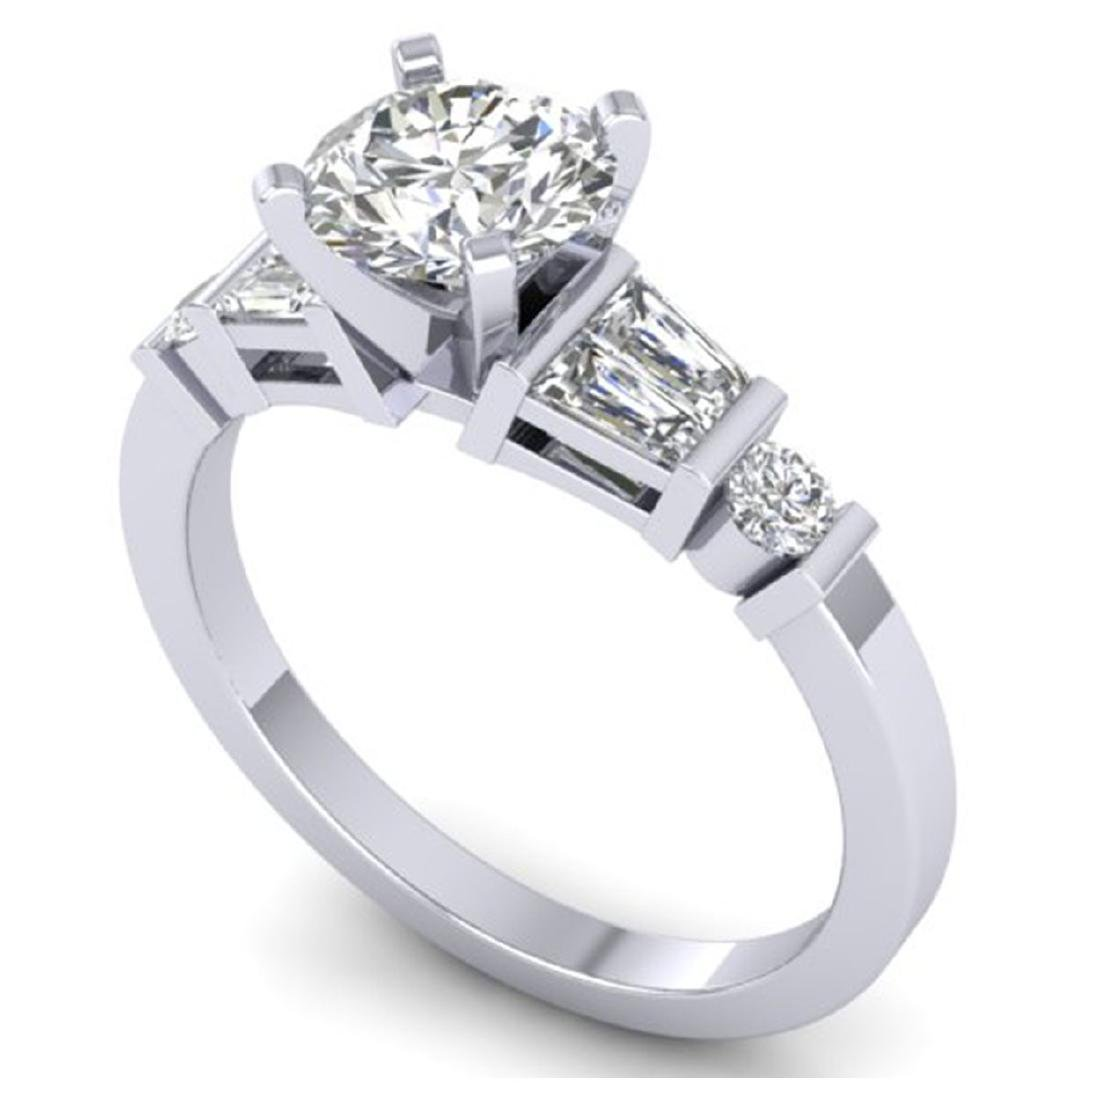 1.69 CTW Certified VS/SI Diamond Solitaire Ring 18K - 2